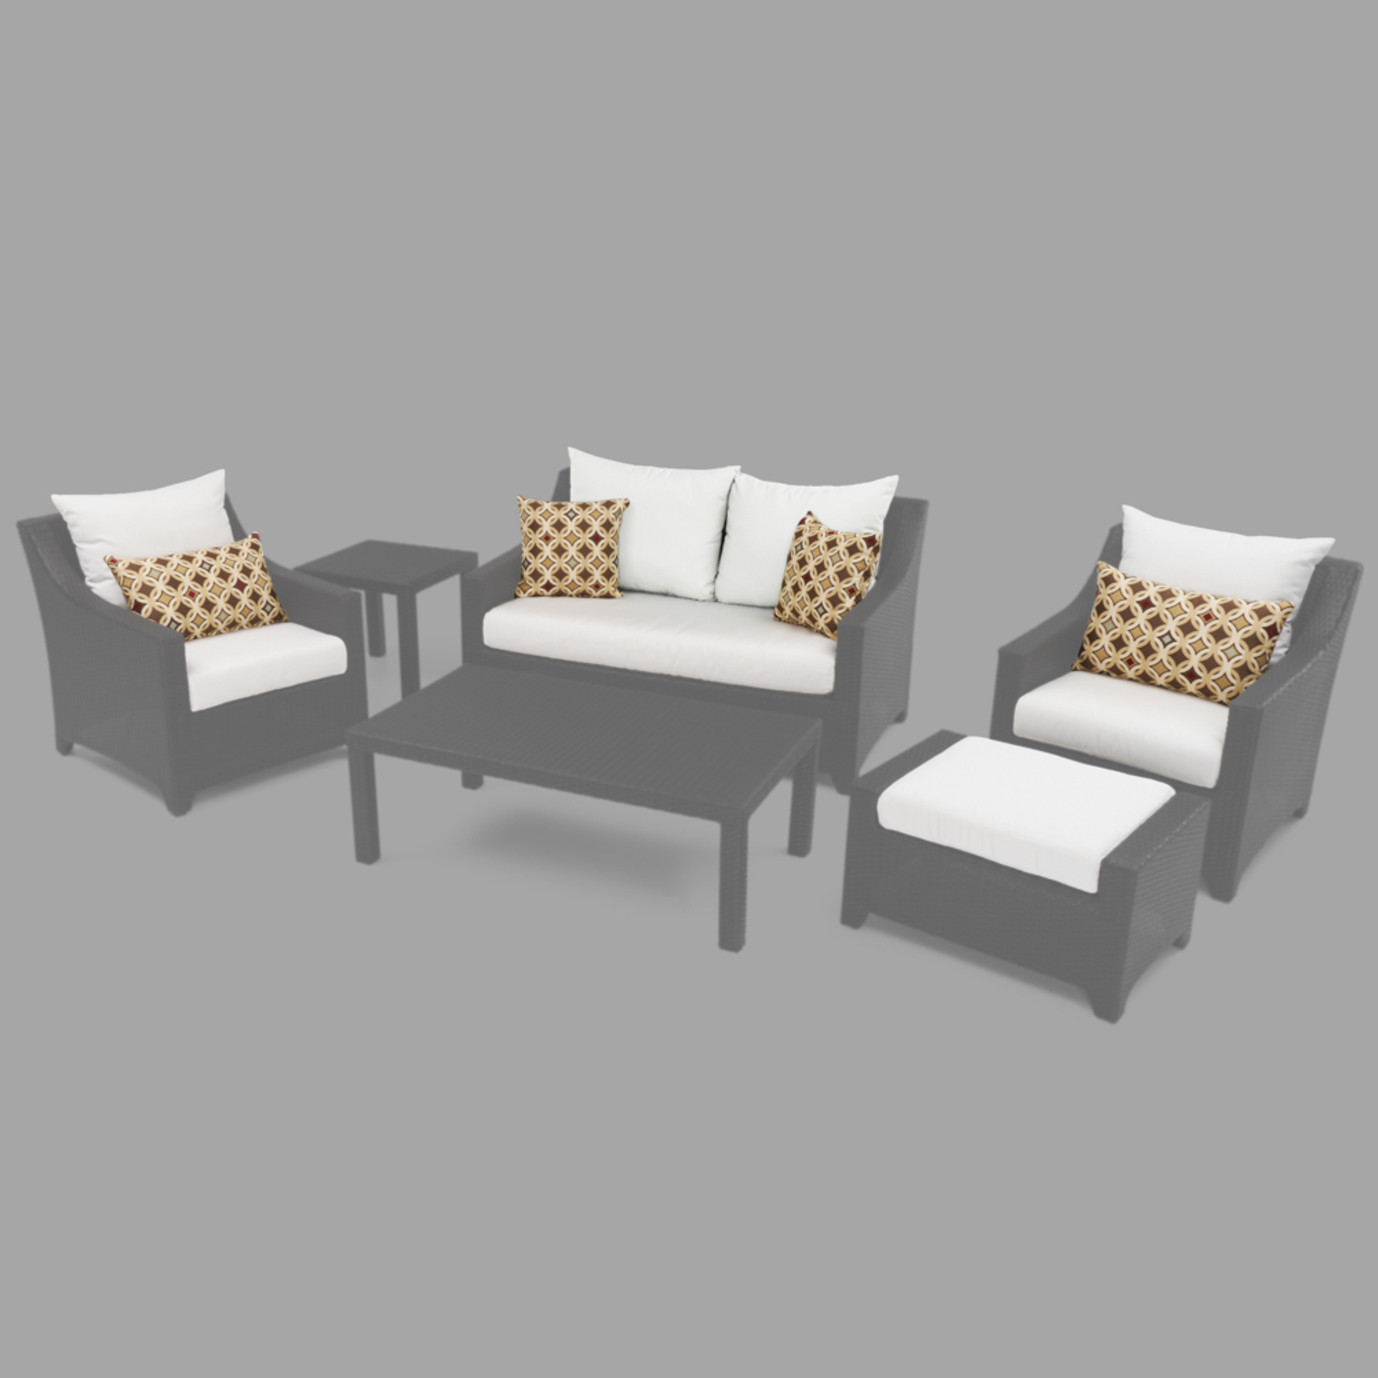 Modular Outdoor 6pc Love Cushion Cover Set - Moroccan Cream